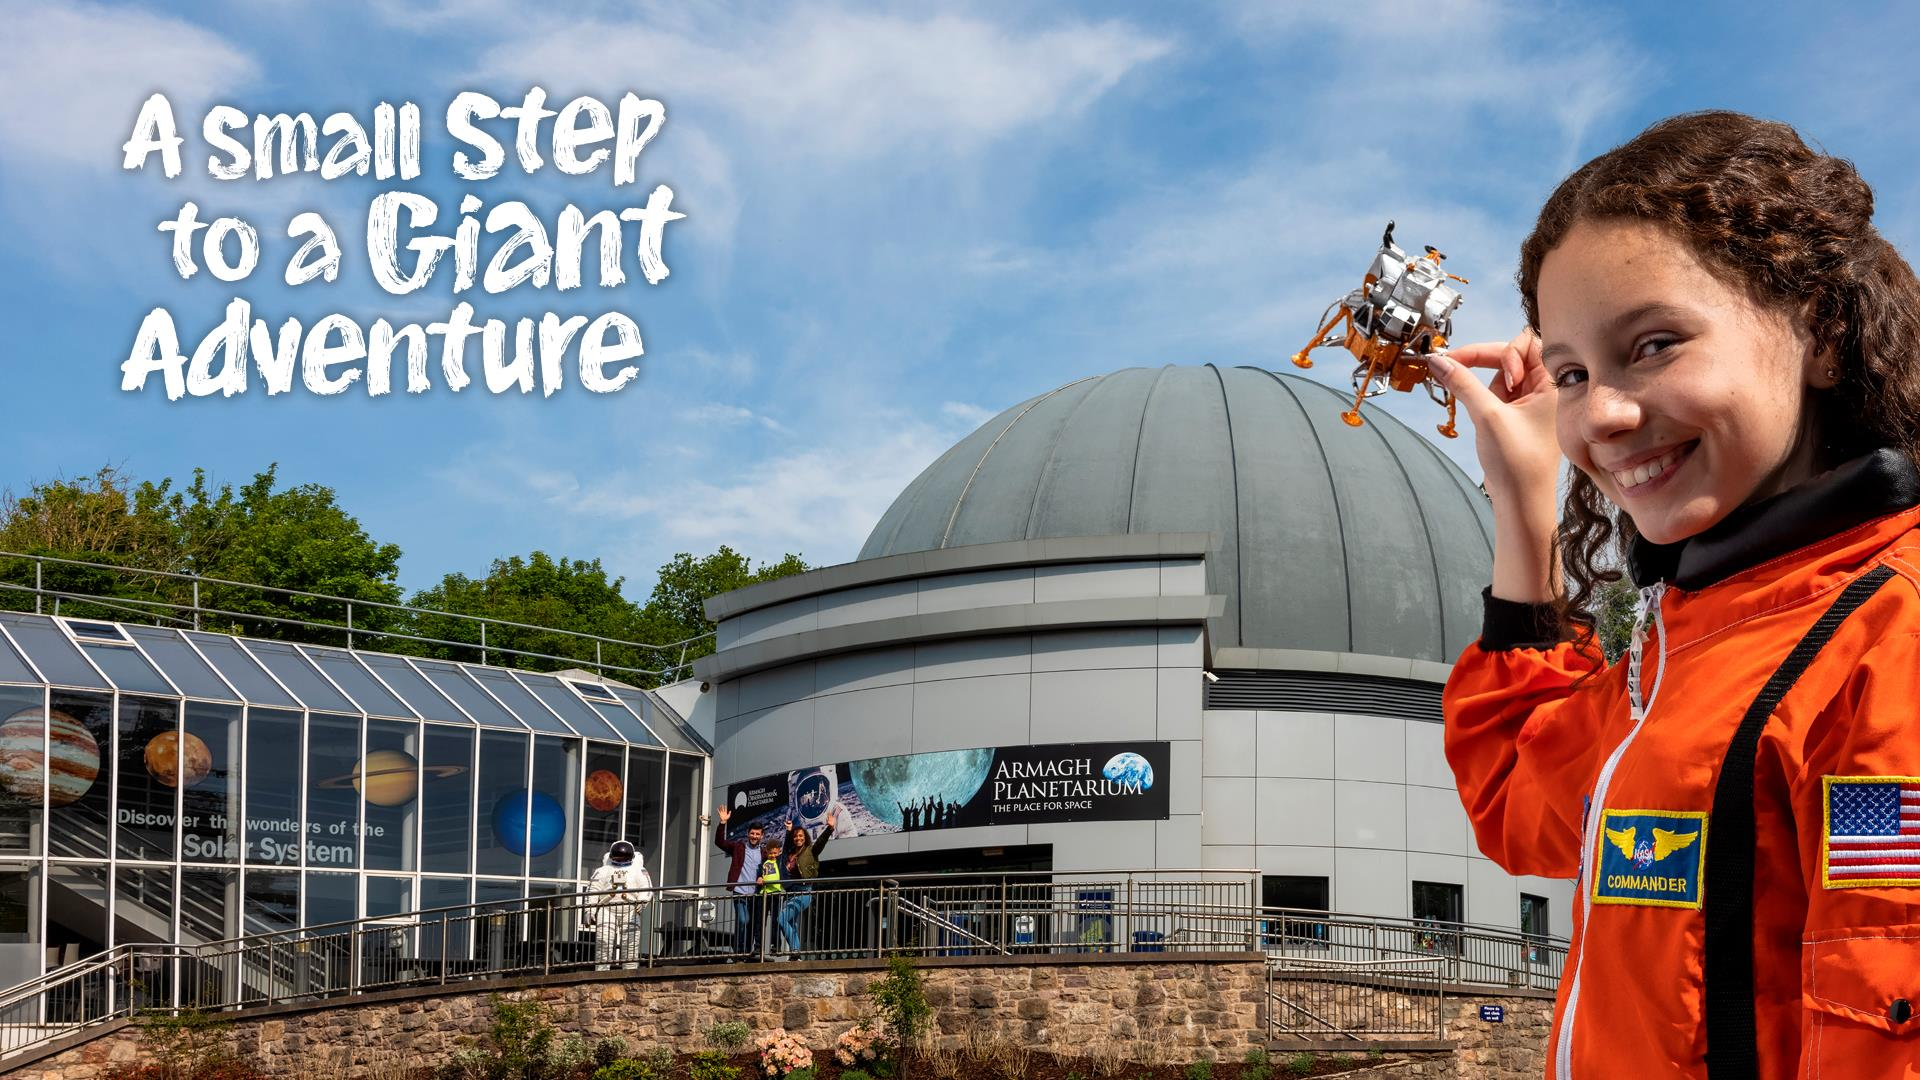 Image shows a girl in a spacesuit pretending to hold a spaceship on top of Armagh Observatory and Planetarium